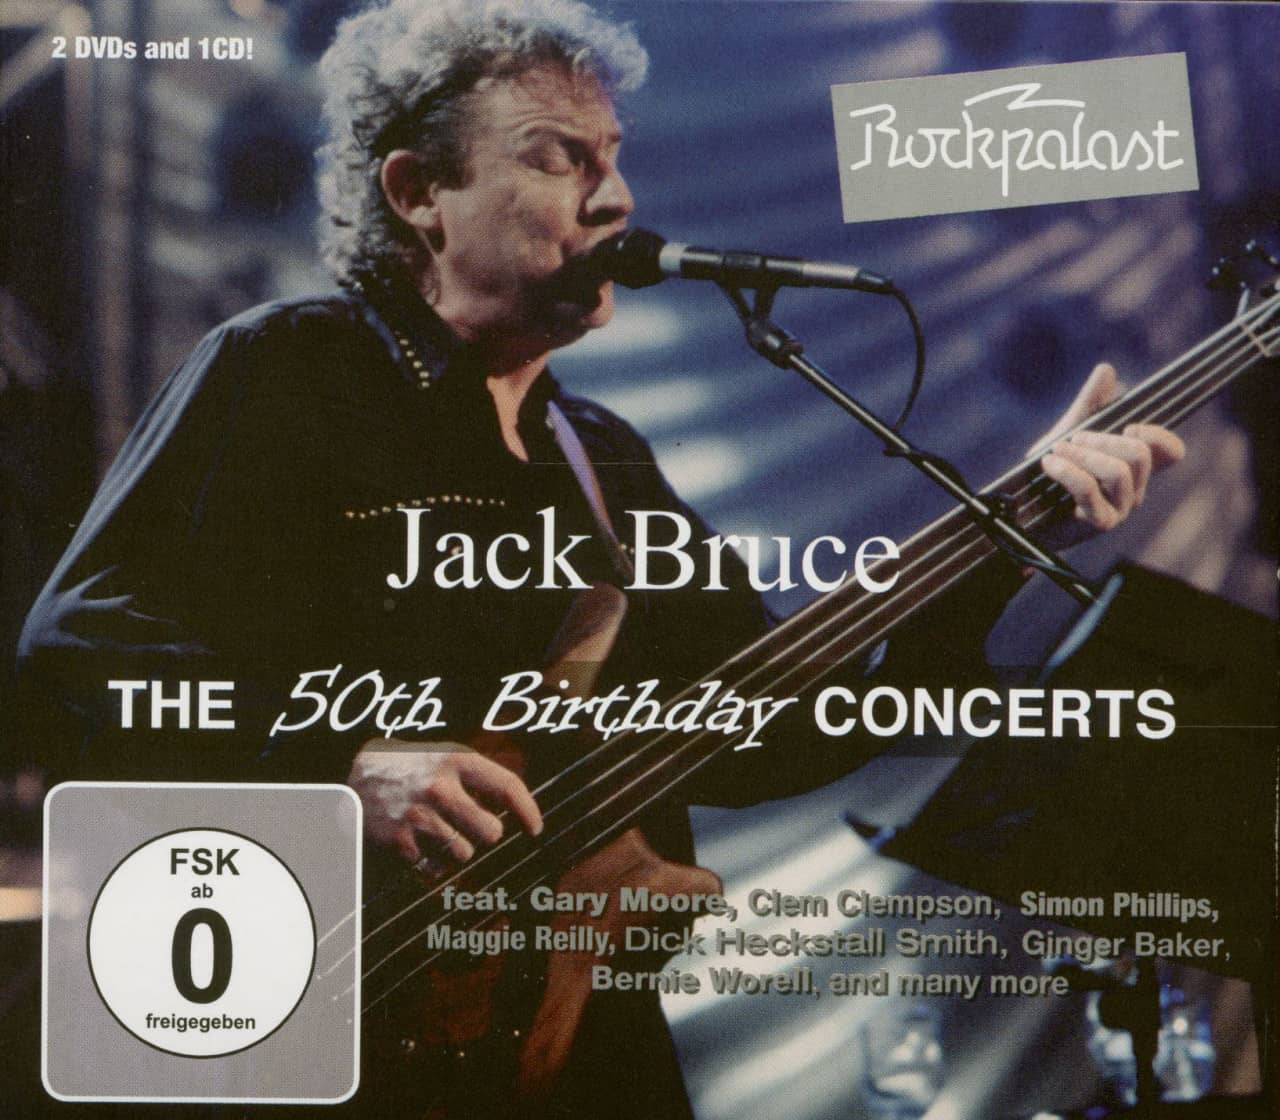 Jack Bruce - The 50th Birthday Concerts (CD & 2-DVD)